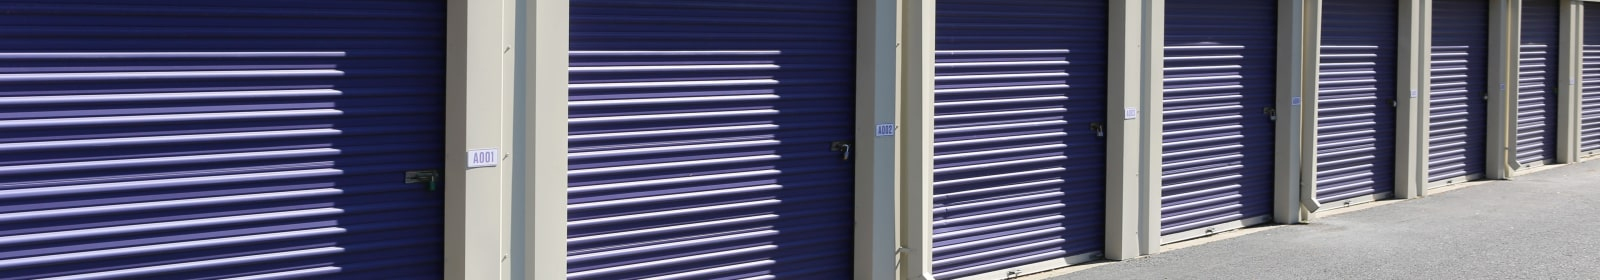 Self storage solutions in Summerville, South Carolina